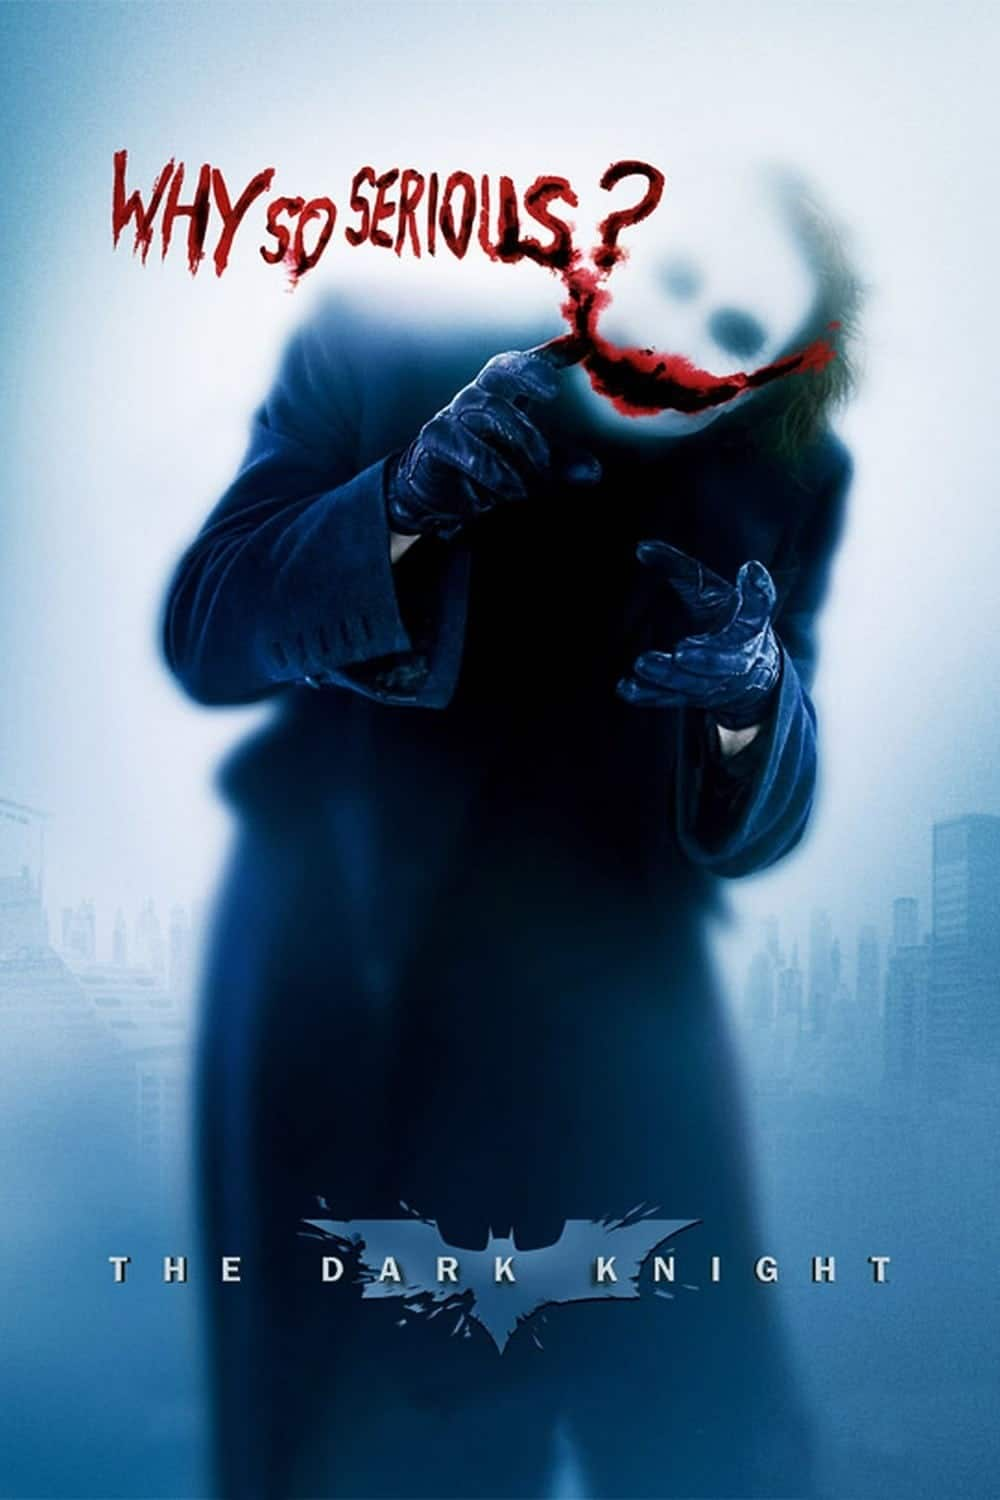 the dark knight poster high quality HD printable wallpapers 2008 joker why so serious joke